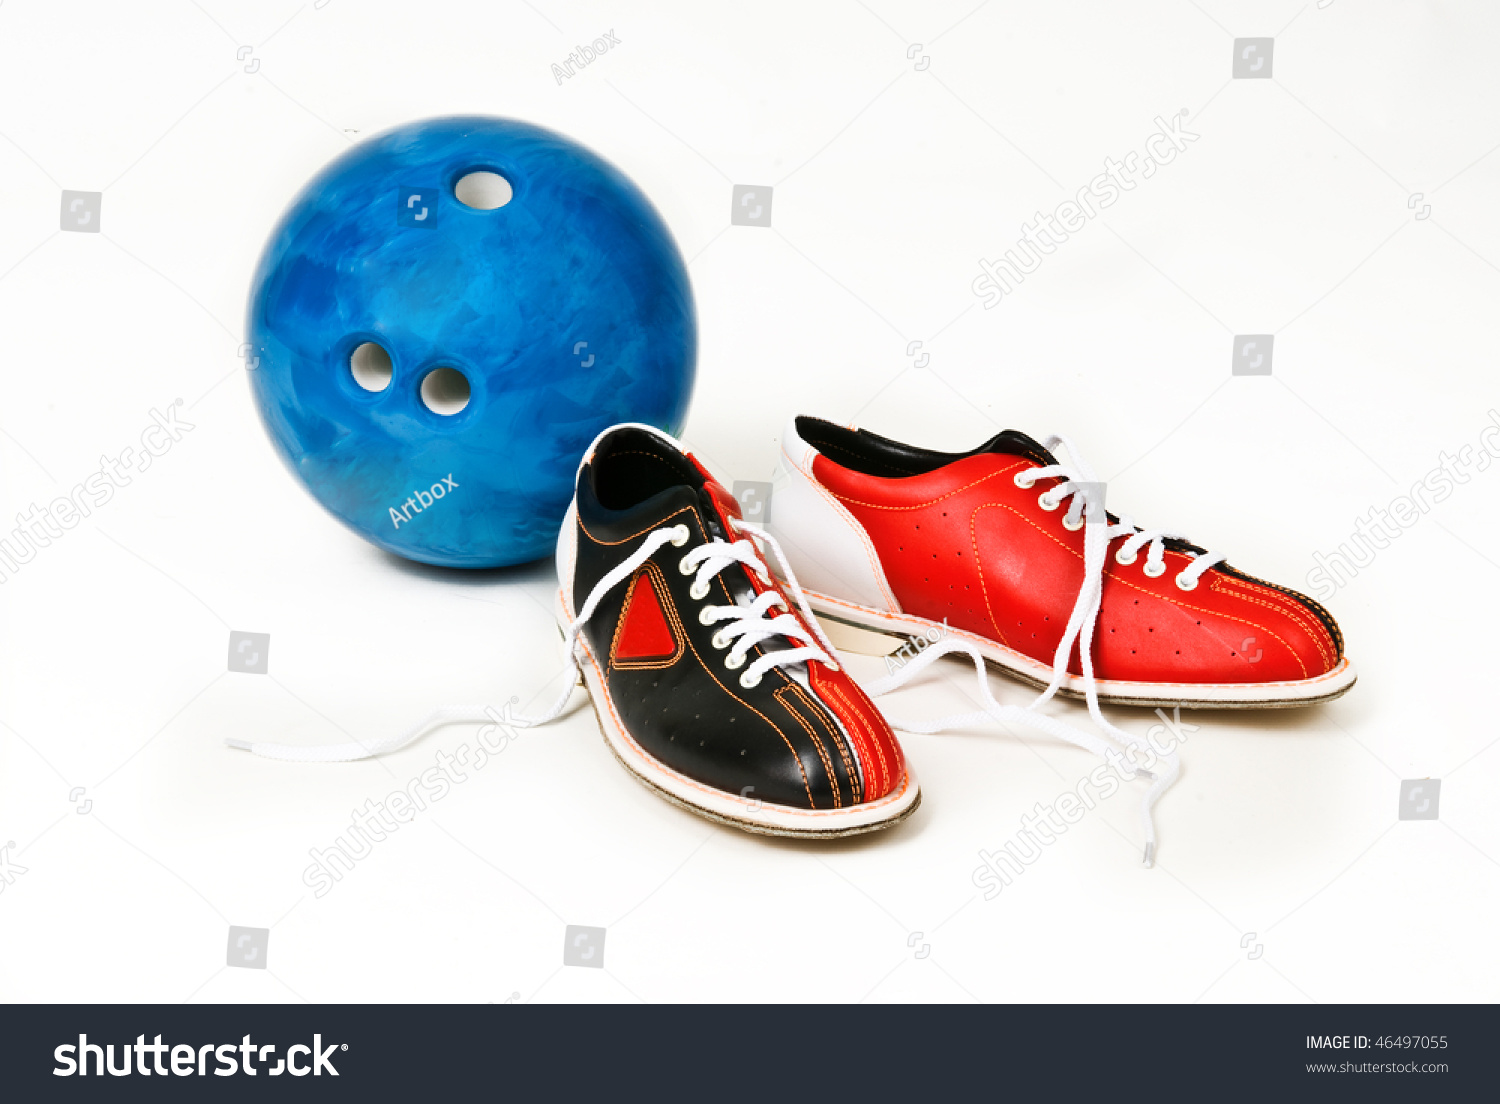 Shoes Bowling Ball Stock Photo 46497055 - Shutterstock